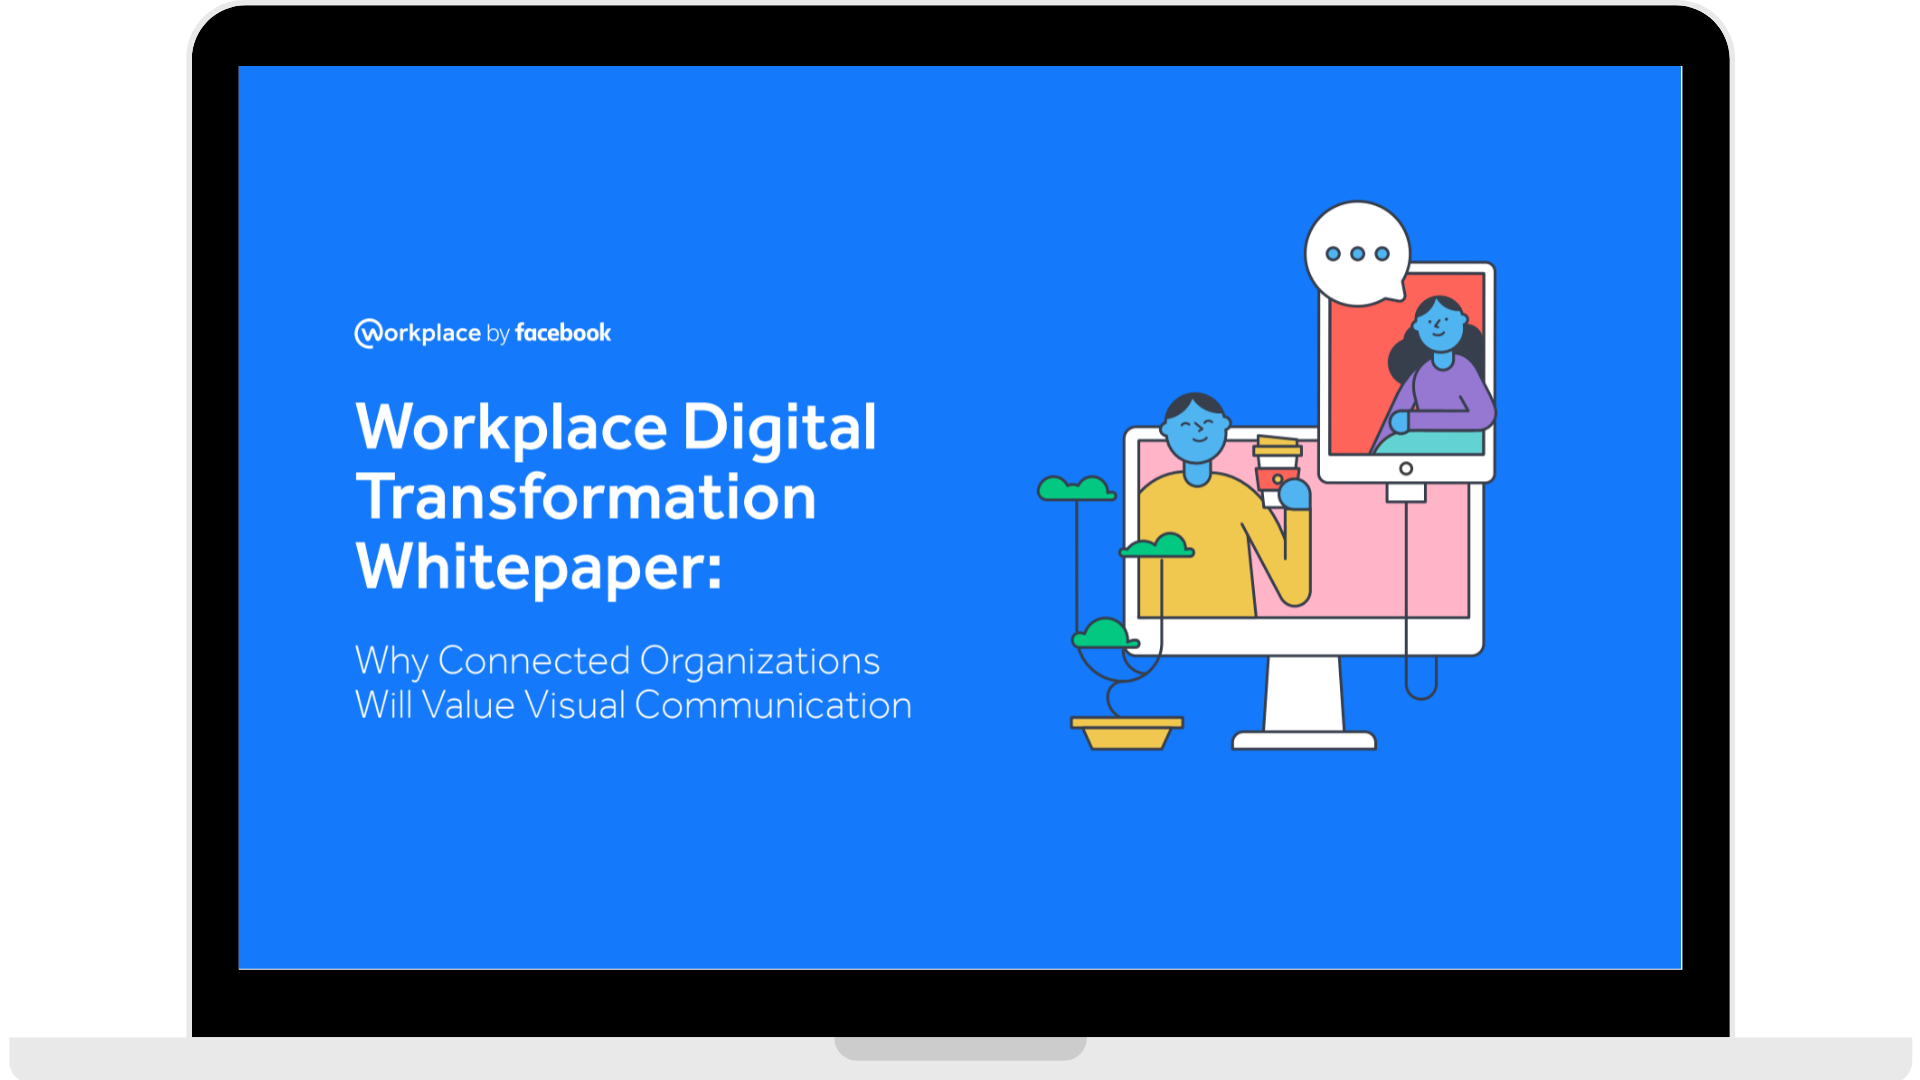 WPF - Whitepaper - Why Connected Organisations Will Value Visual Communication - Laptop - Transparent